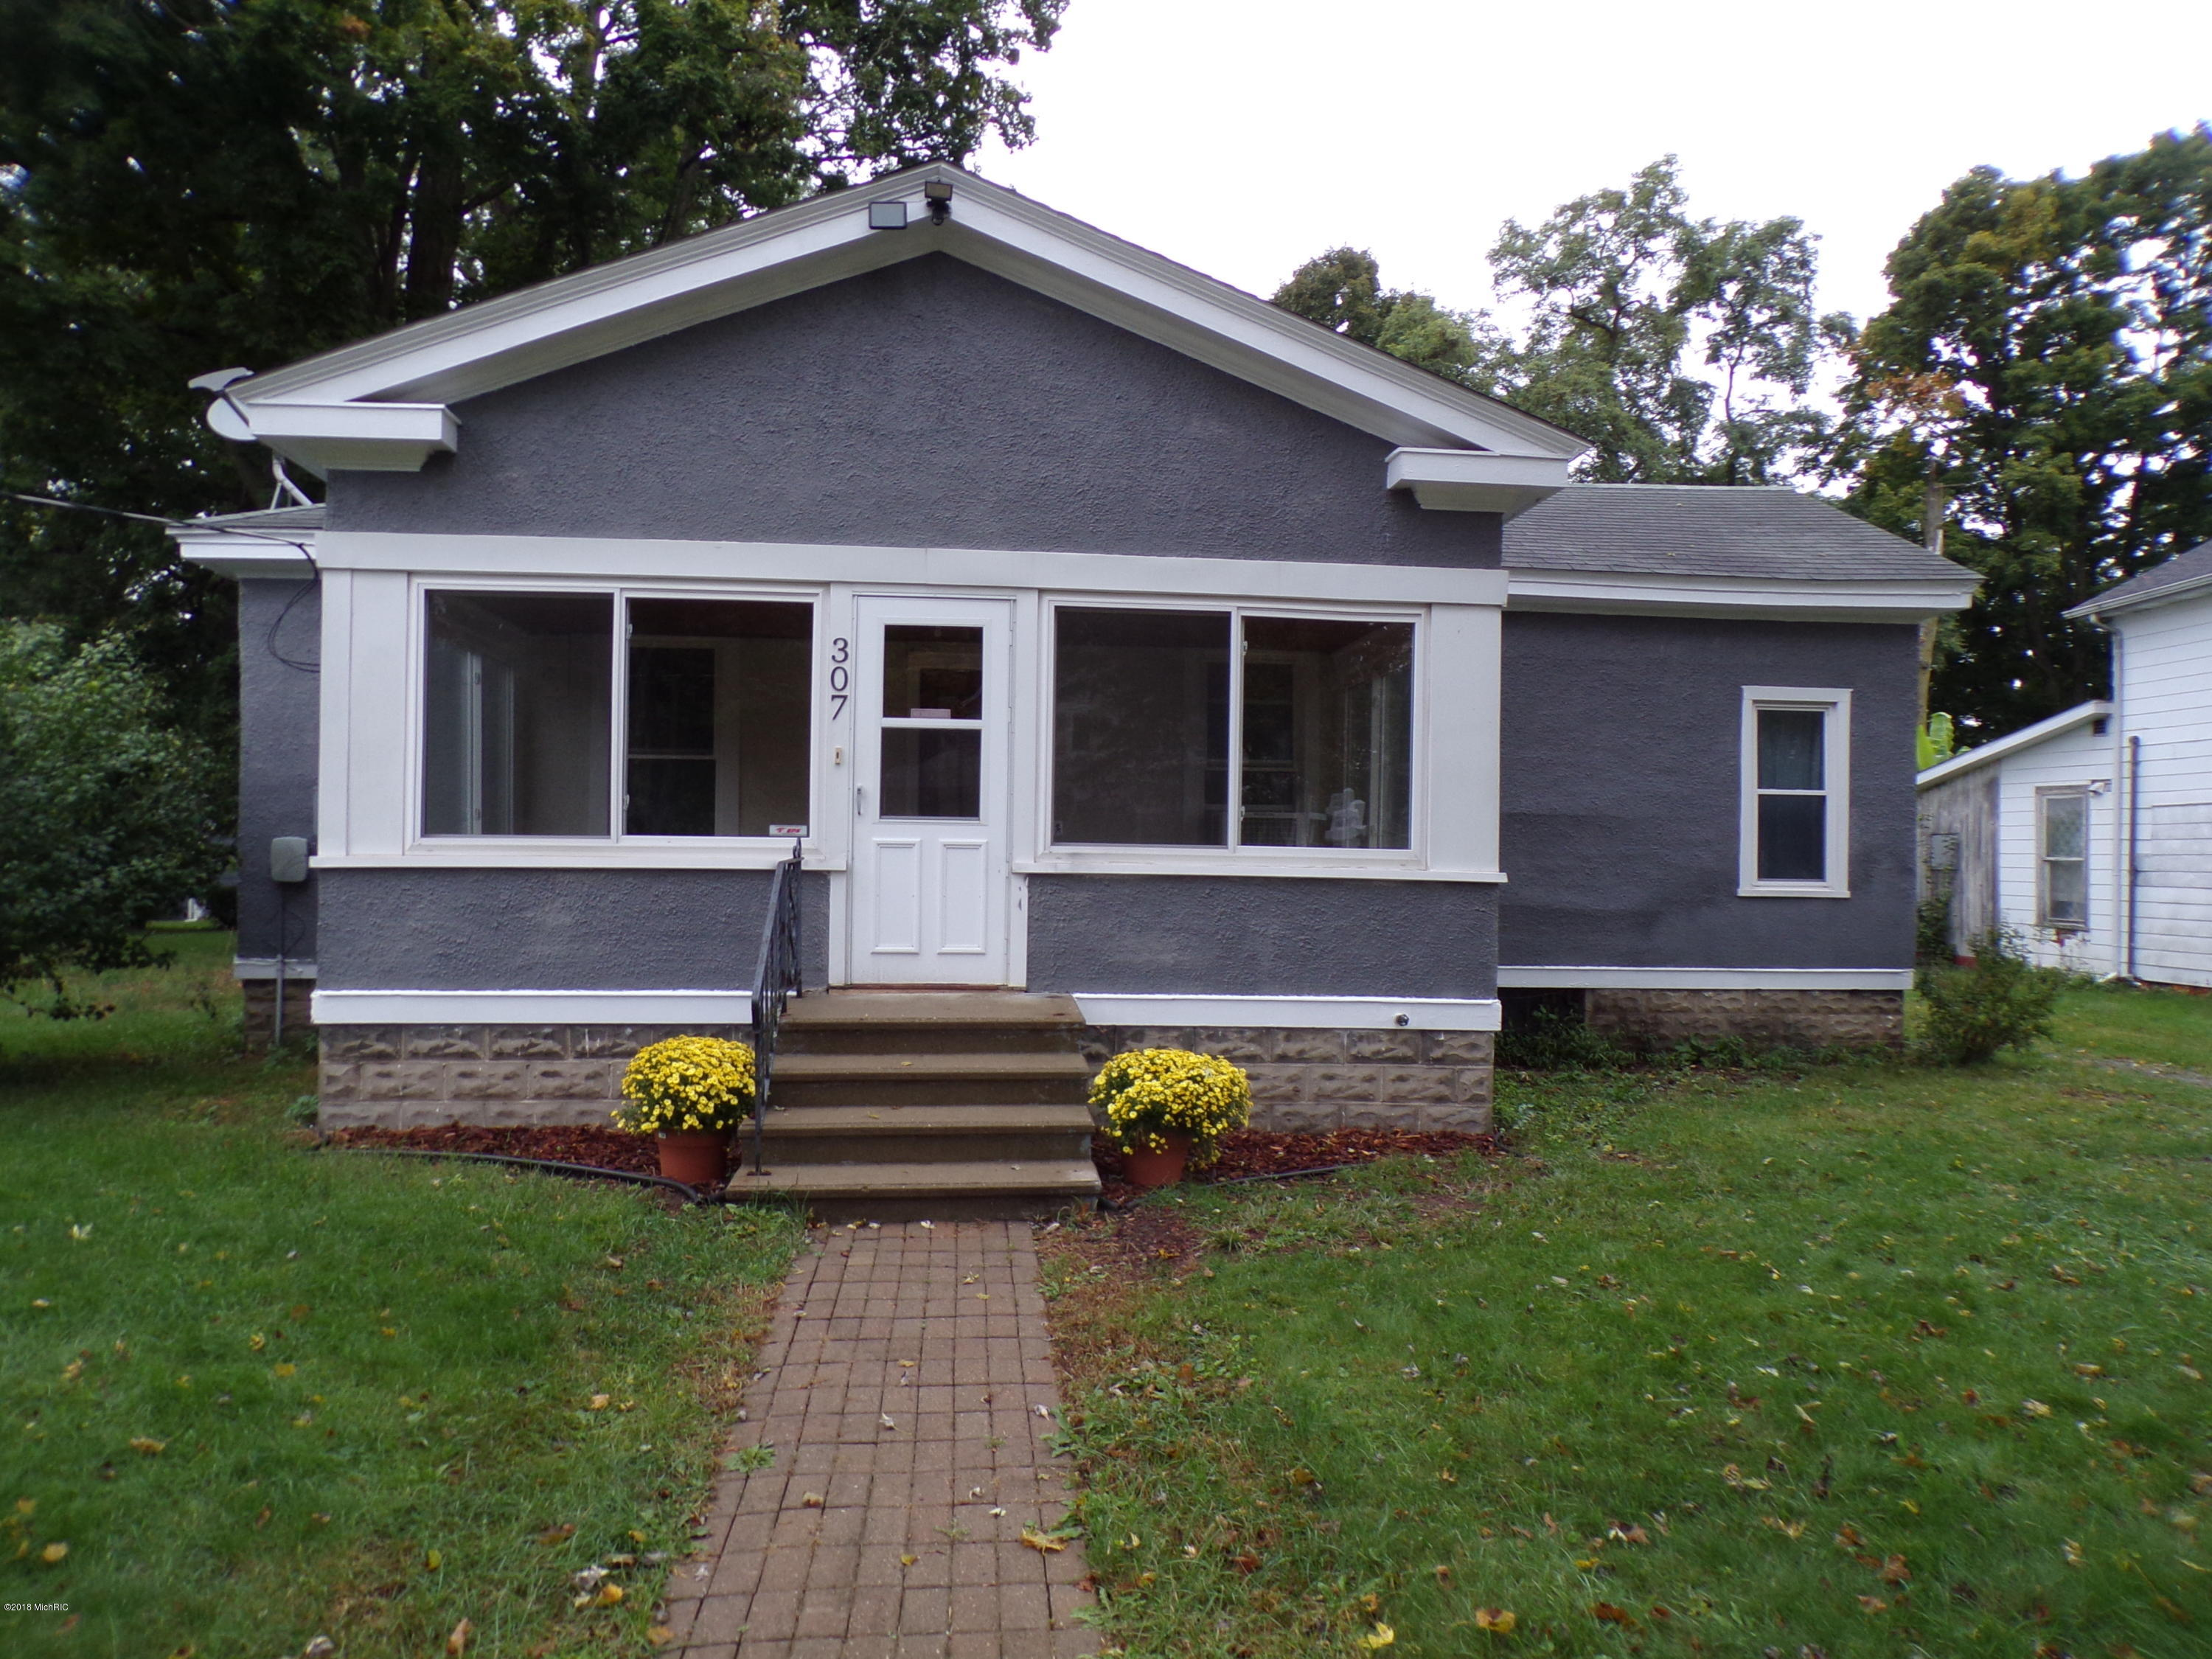 Photo for 307 Cedar Street, Paw Paw, MI 49079 (MLS # 18054182)